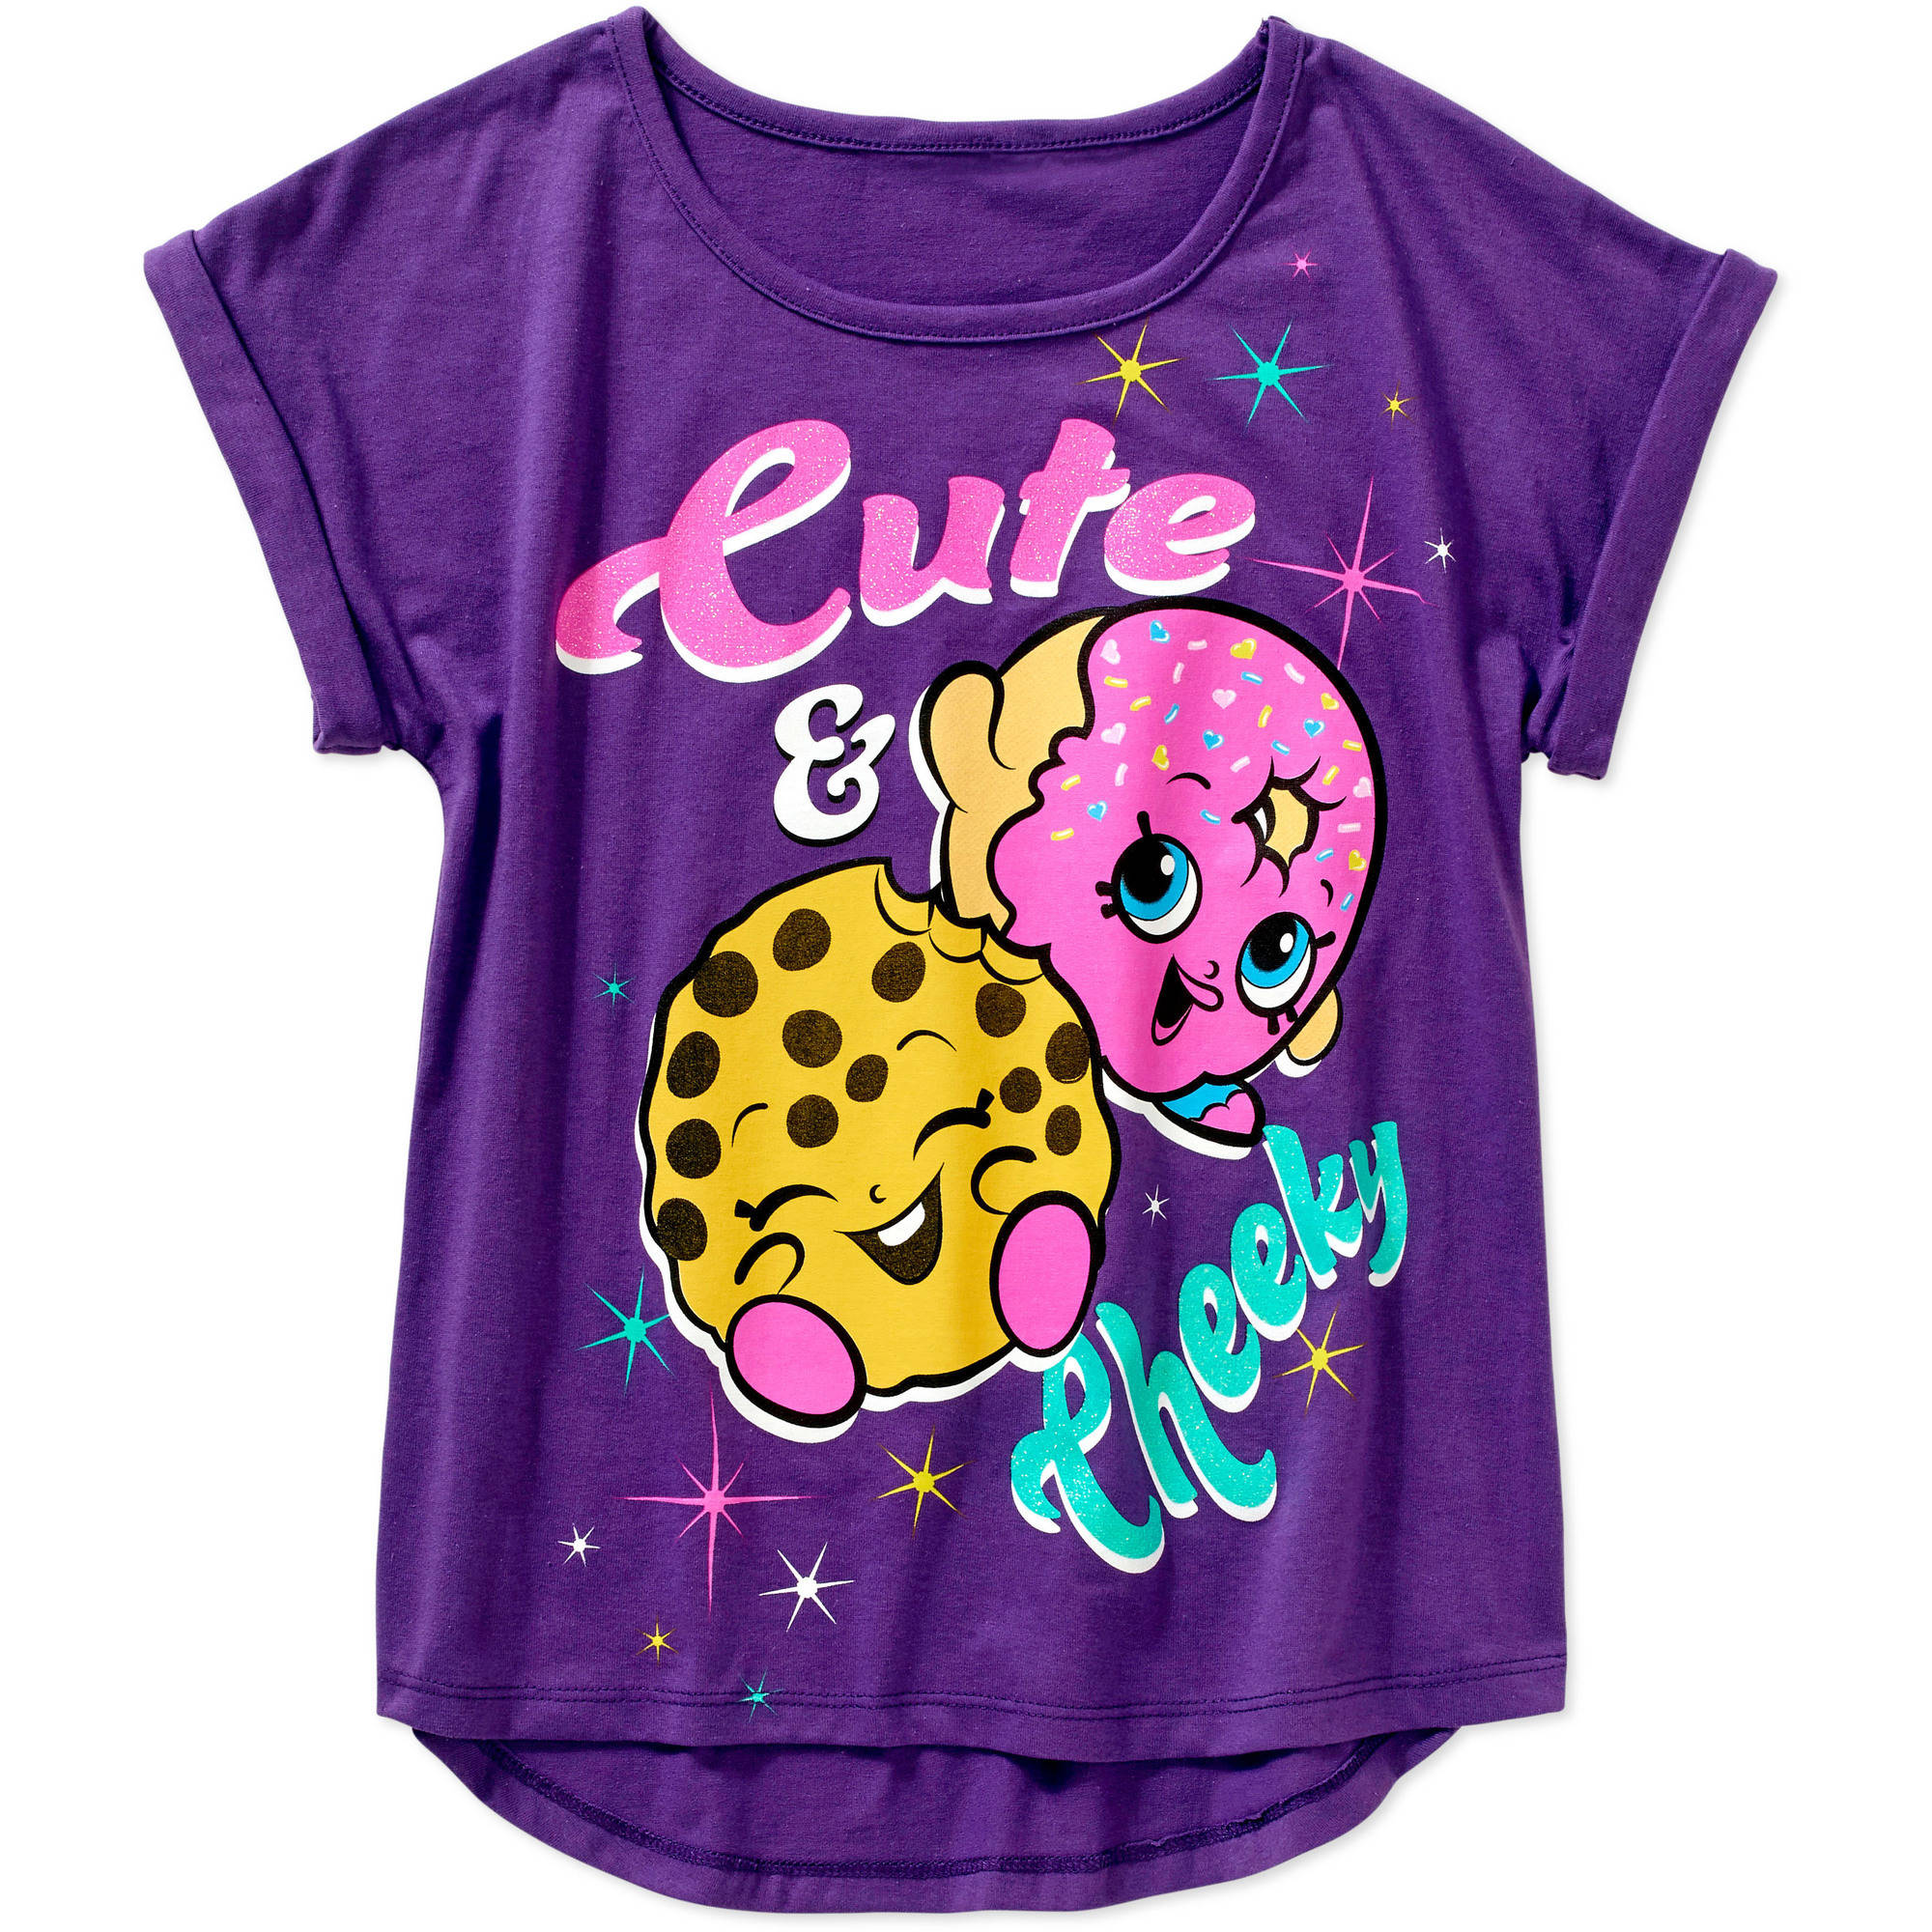 Shopkins Girls' Cute and Cheeky Short Sleeve Crew Neck Graphic Tee